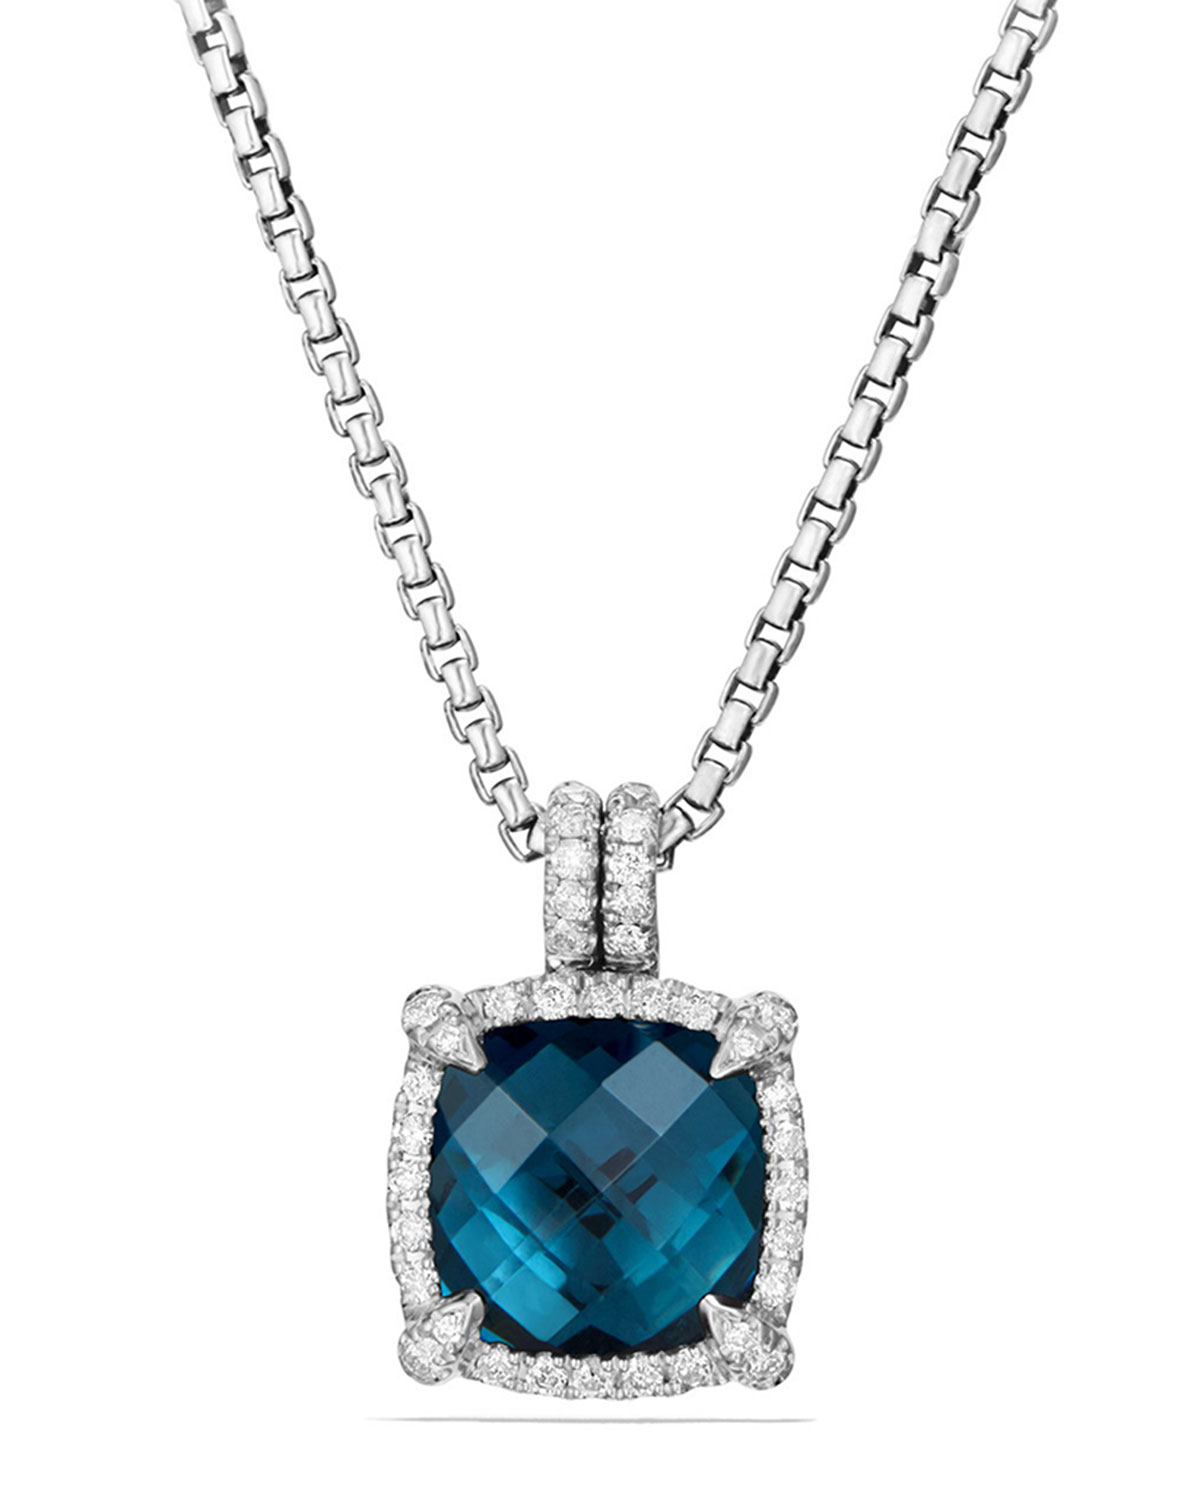 VICTOR BLUE TOPEZ SILVER NECKLACE   Blue Topaz /& Diamond Accent NEW  $100